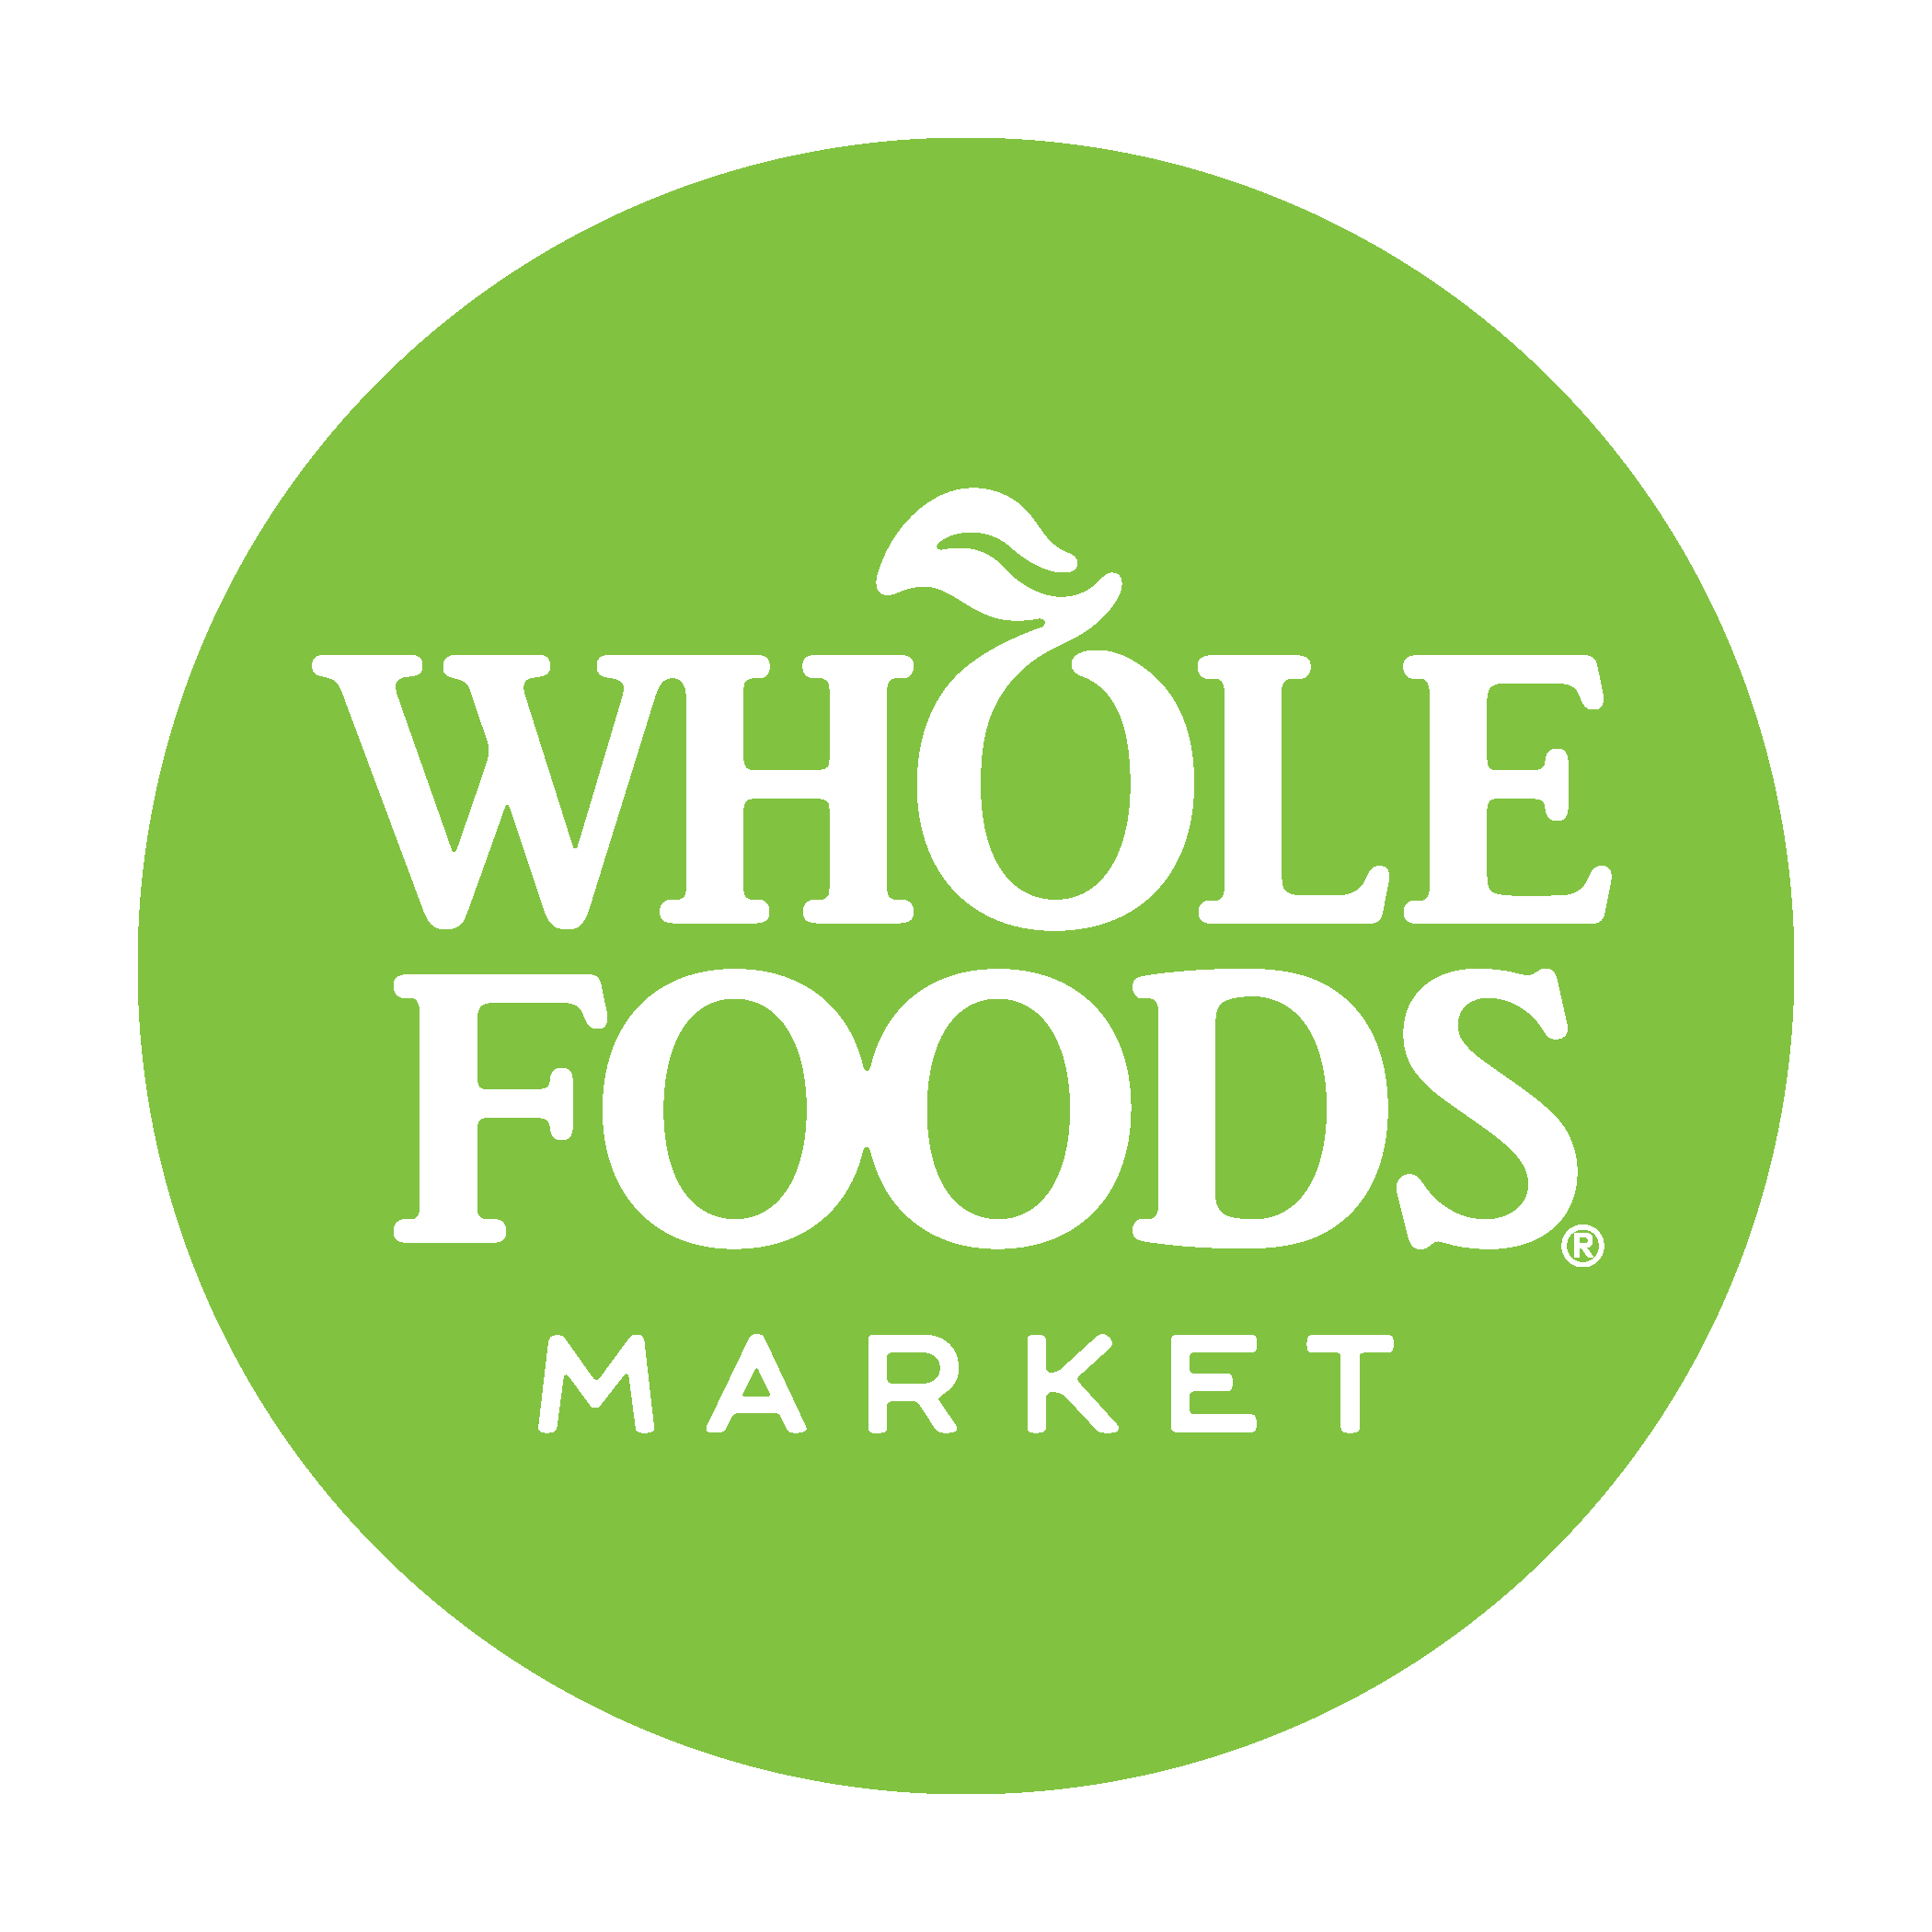 Whole Foods Market Logo Png Image Whole Foods Market Food Logo Design Whole Food Recipes